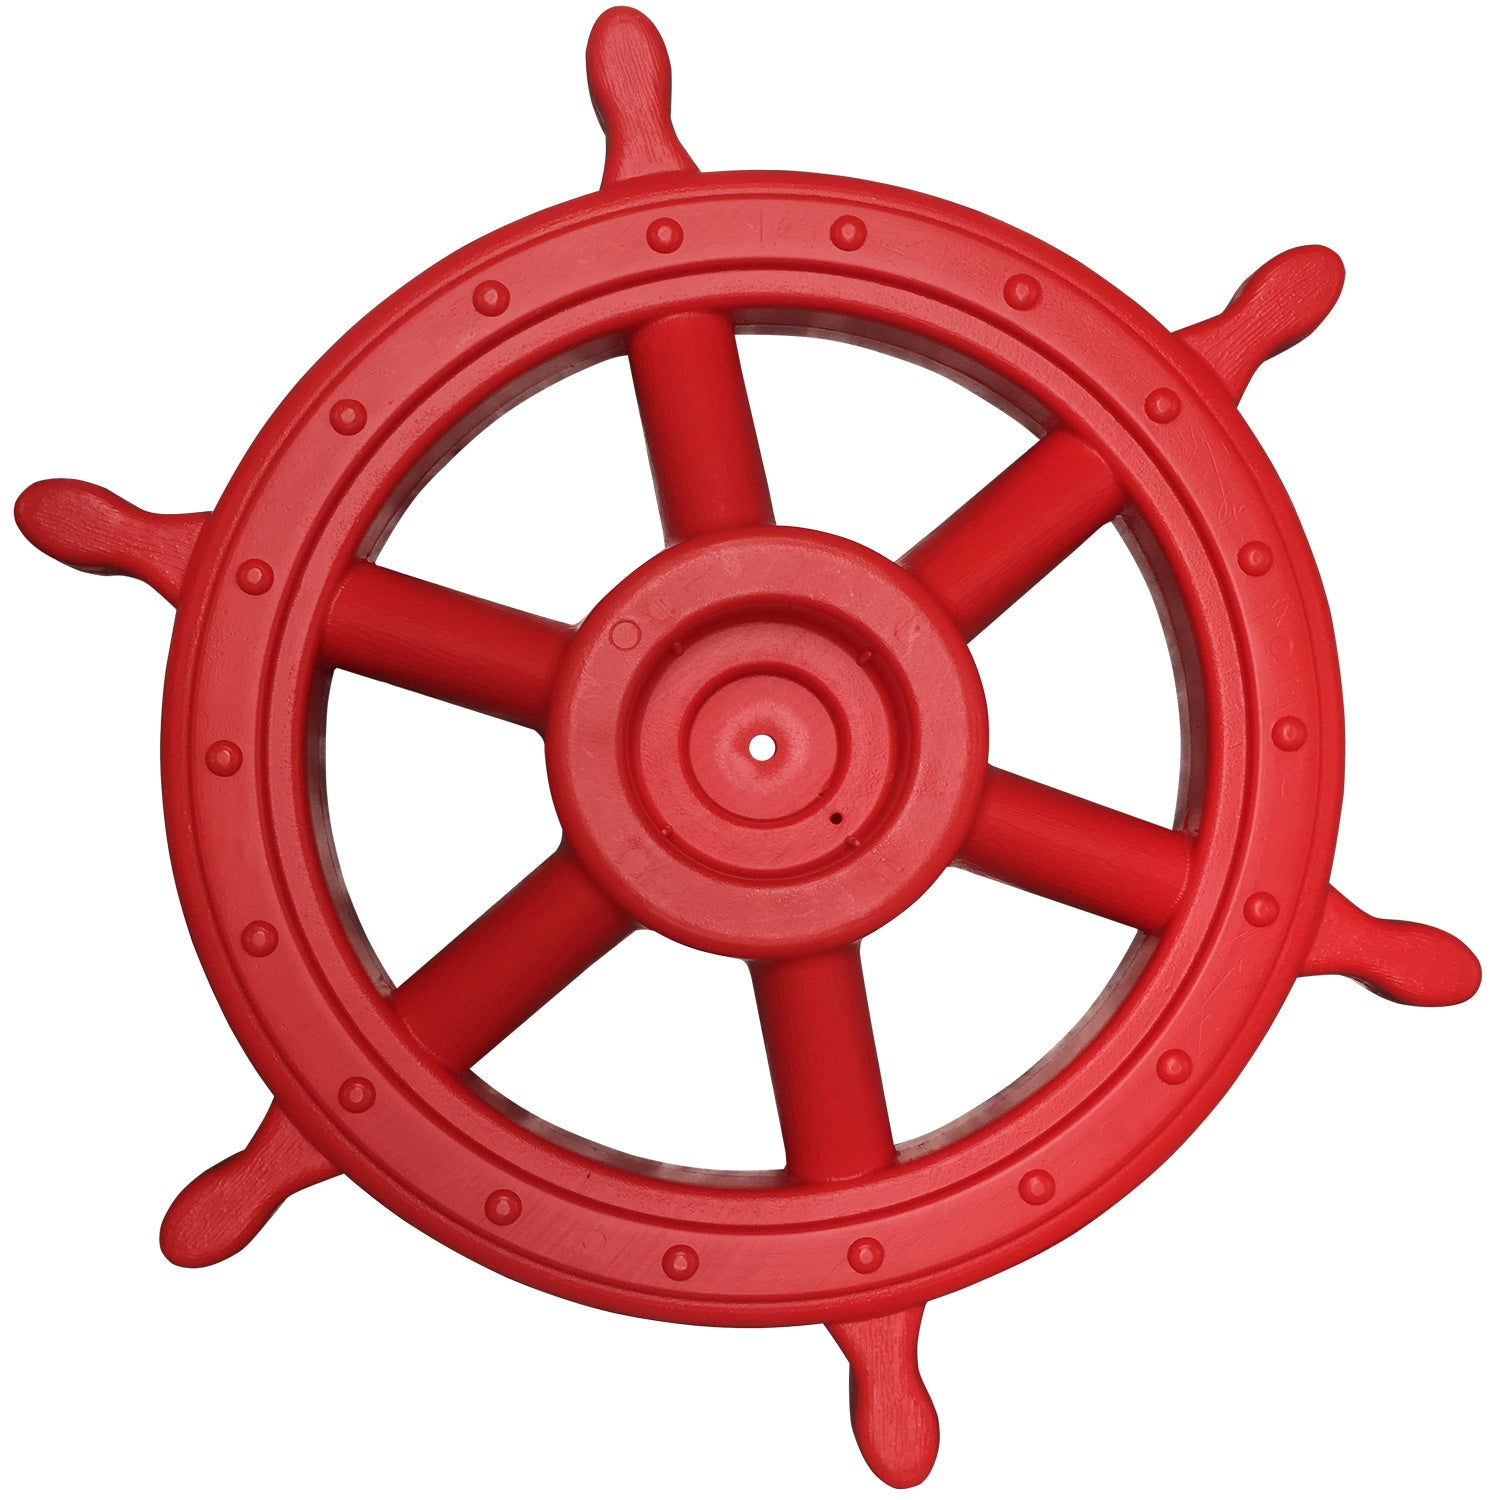 Lifespan Kids Ship's Steering Wheel